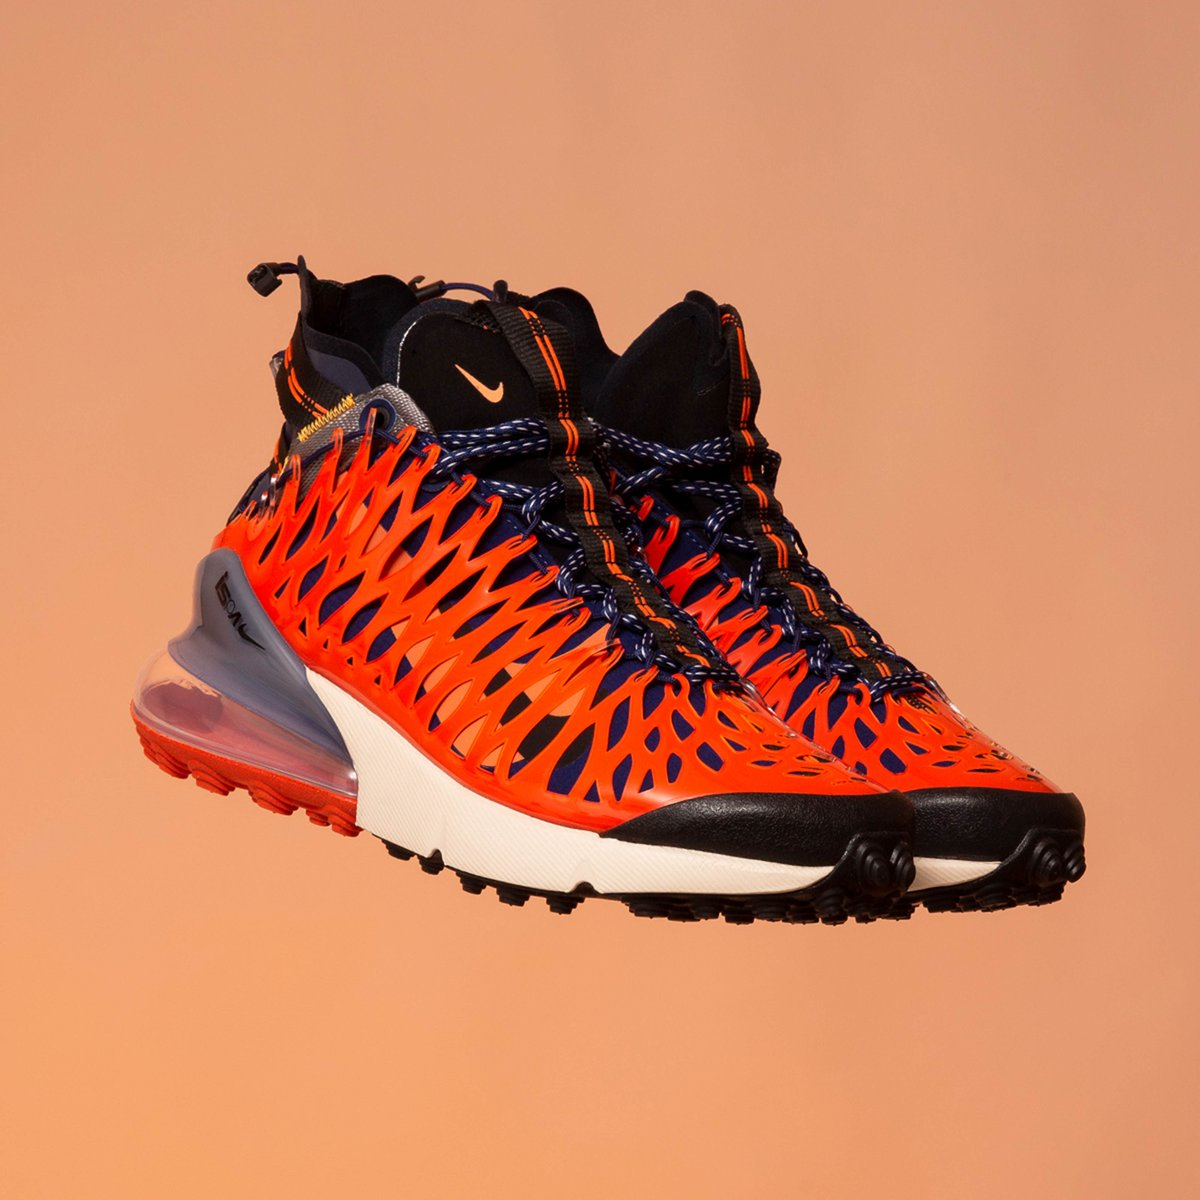 44e87825e26 out now 🔥 Nike Air Max 270 ISPA - Blue Void/Black-Terra Orange ...